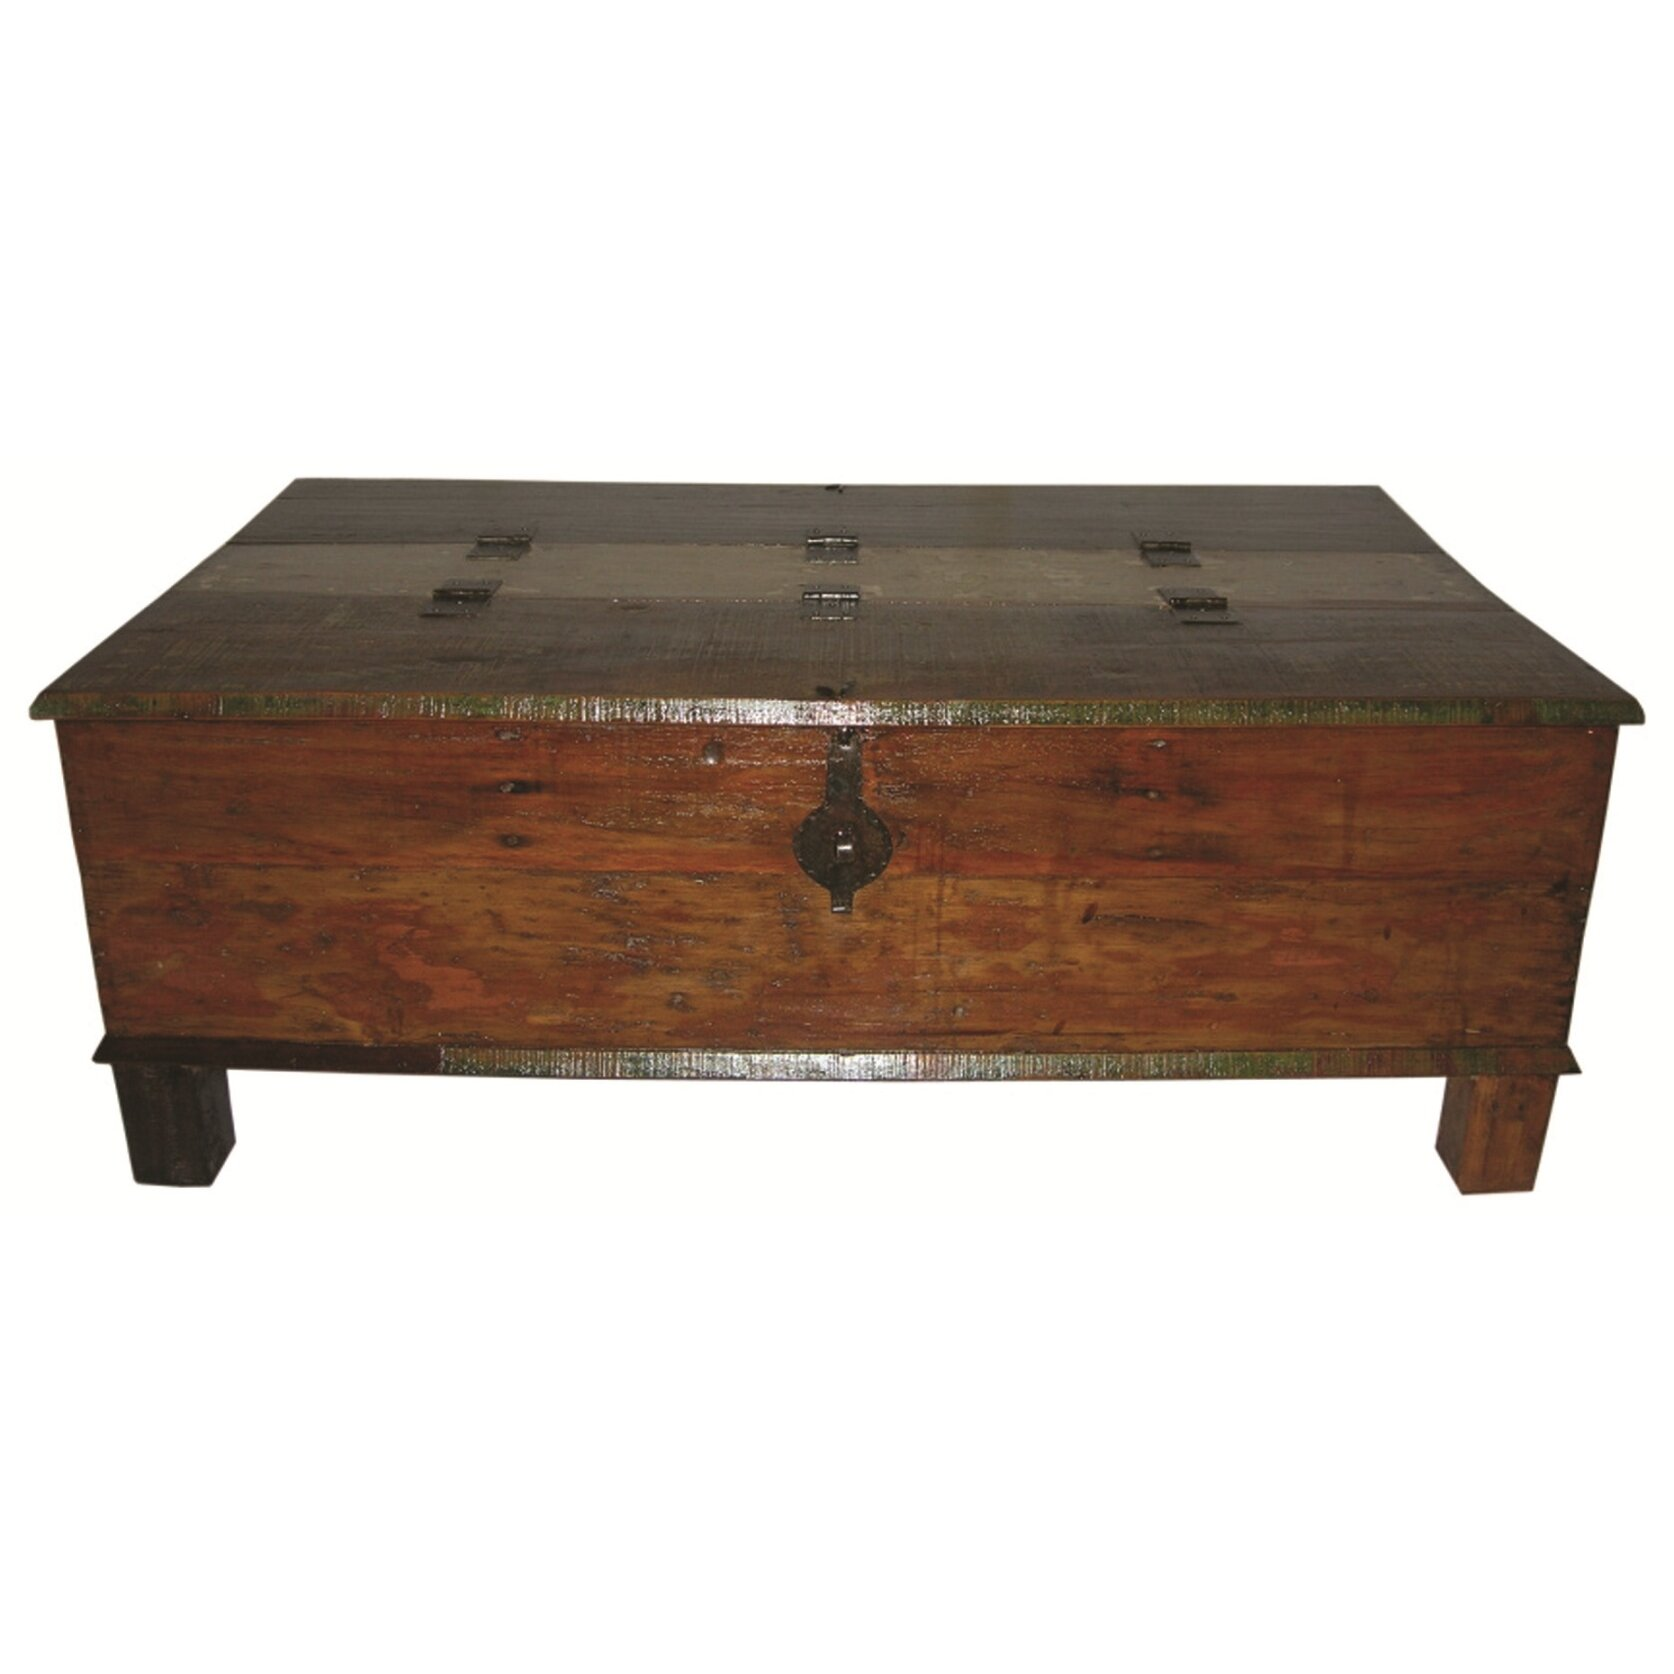 Moti furniture box trunk coffee table reviews wayfair for Table furniture